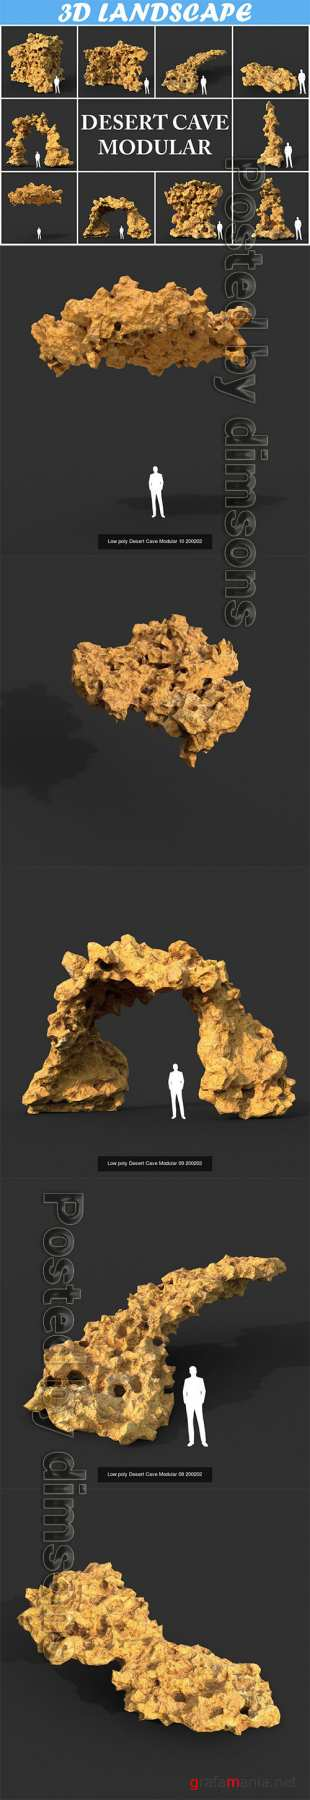 Low poly Desert Cave Modular Pack 200202 3D Model Collection